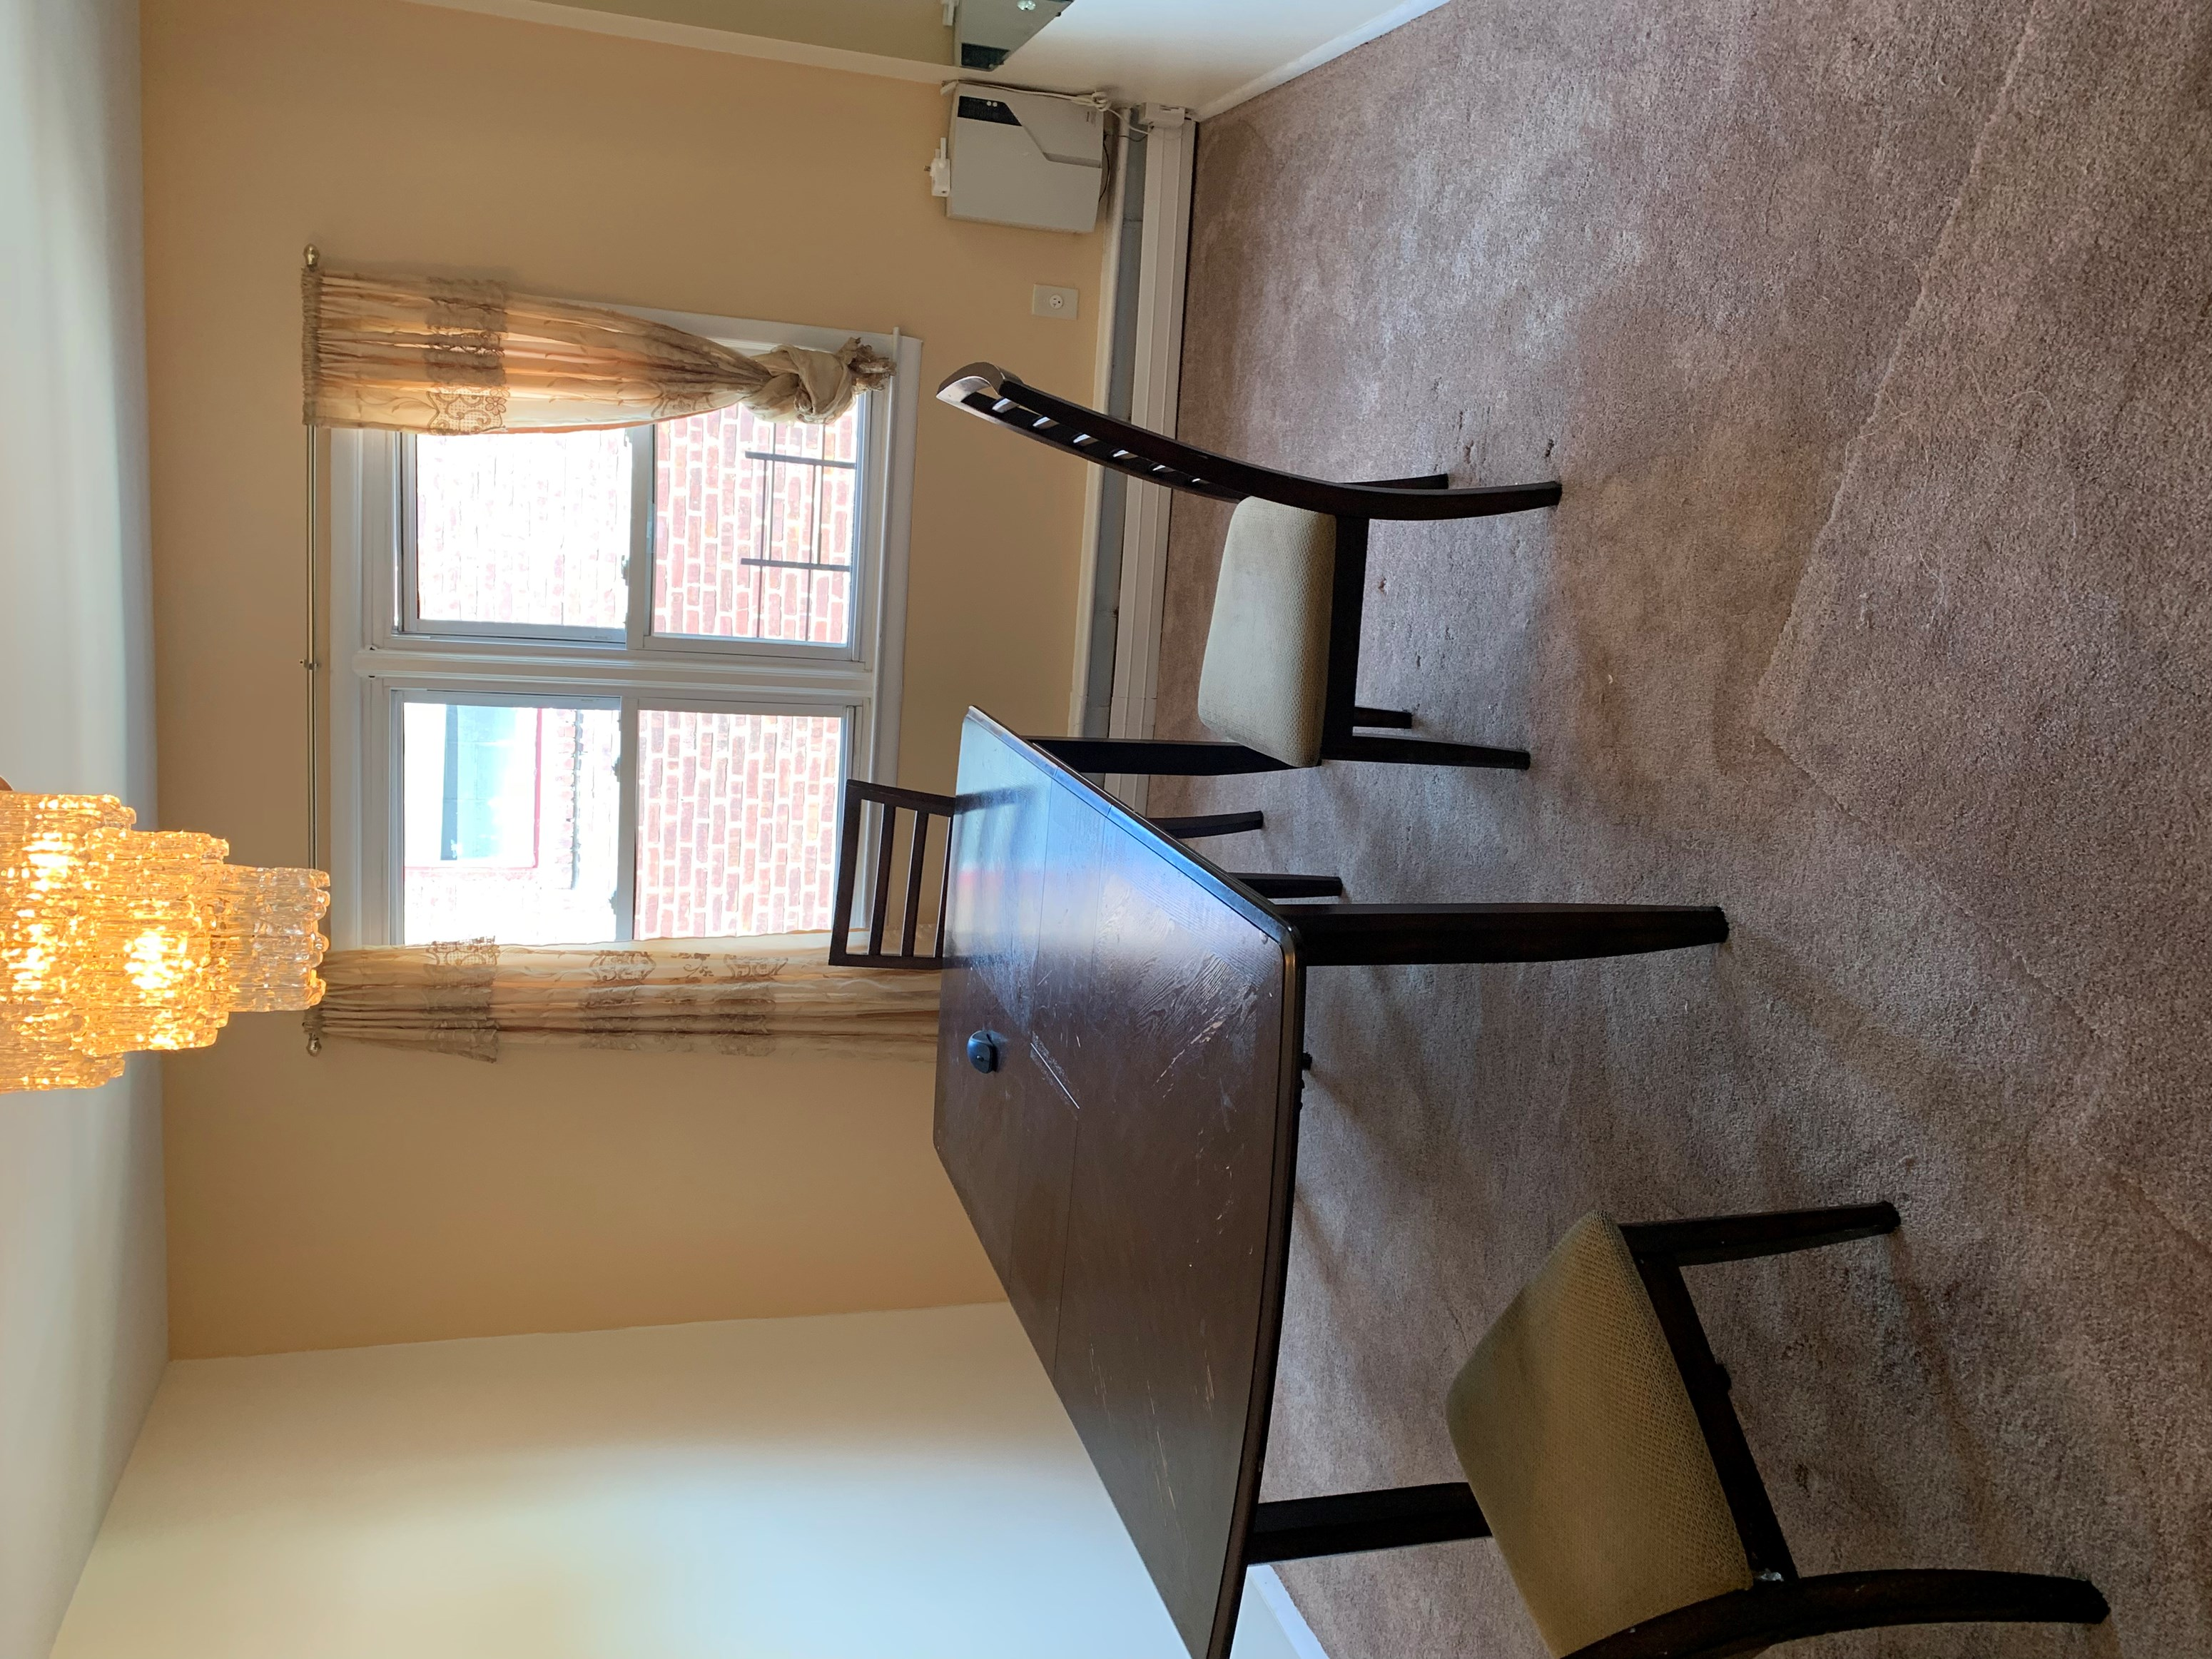 Spacious Single Room For Rent In Queensjamaica In Fresh Meadows Ny